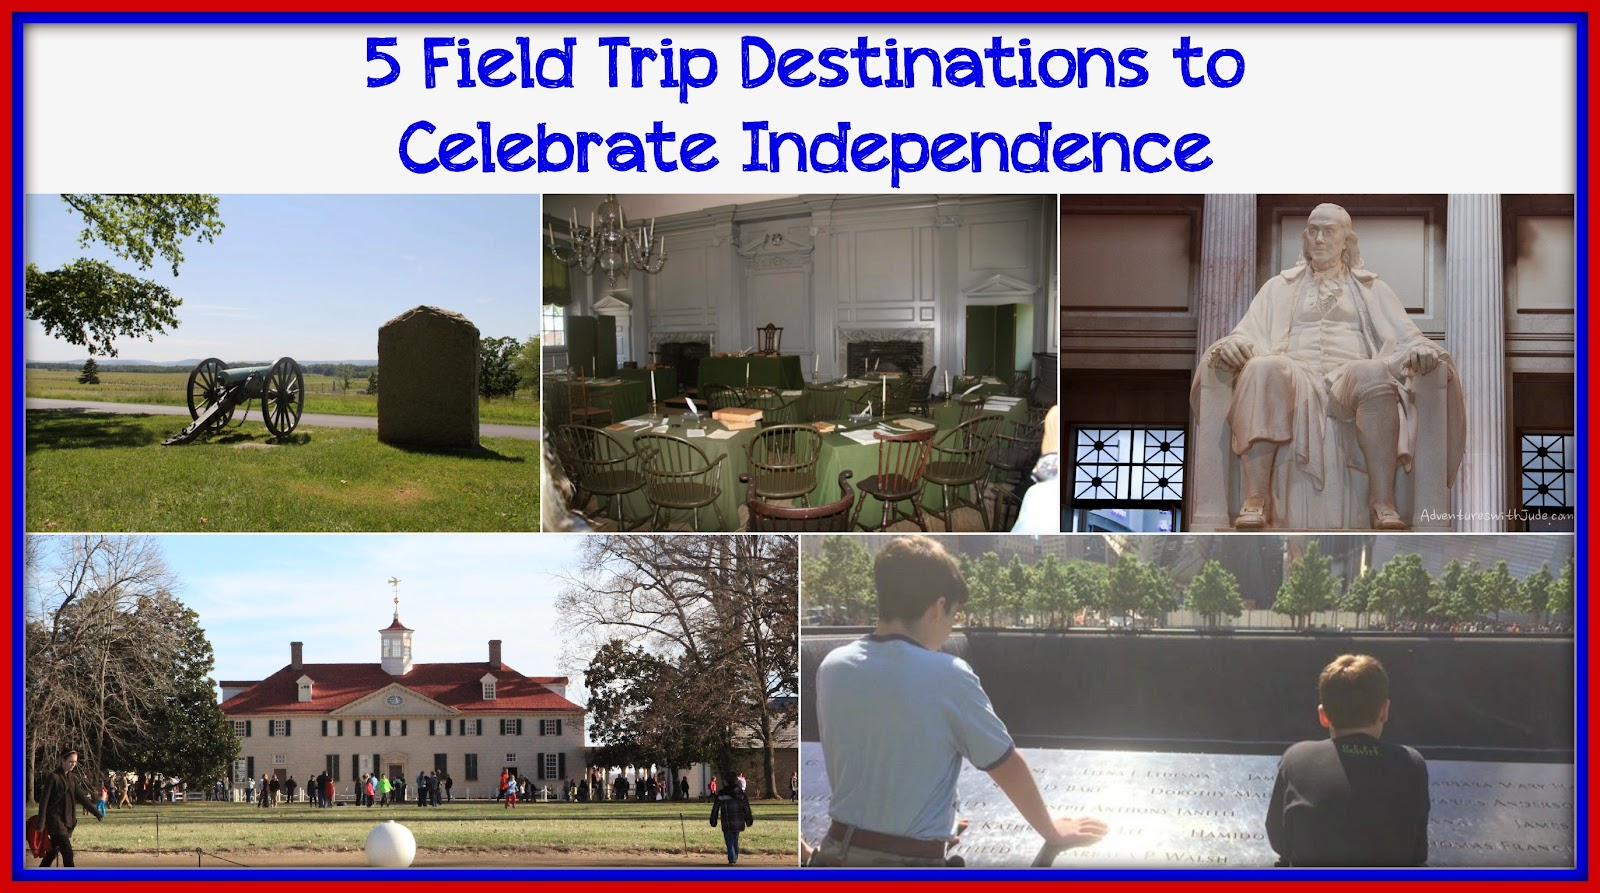 5 Field Trips to Celebrate Independence